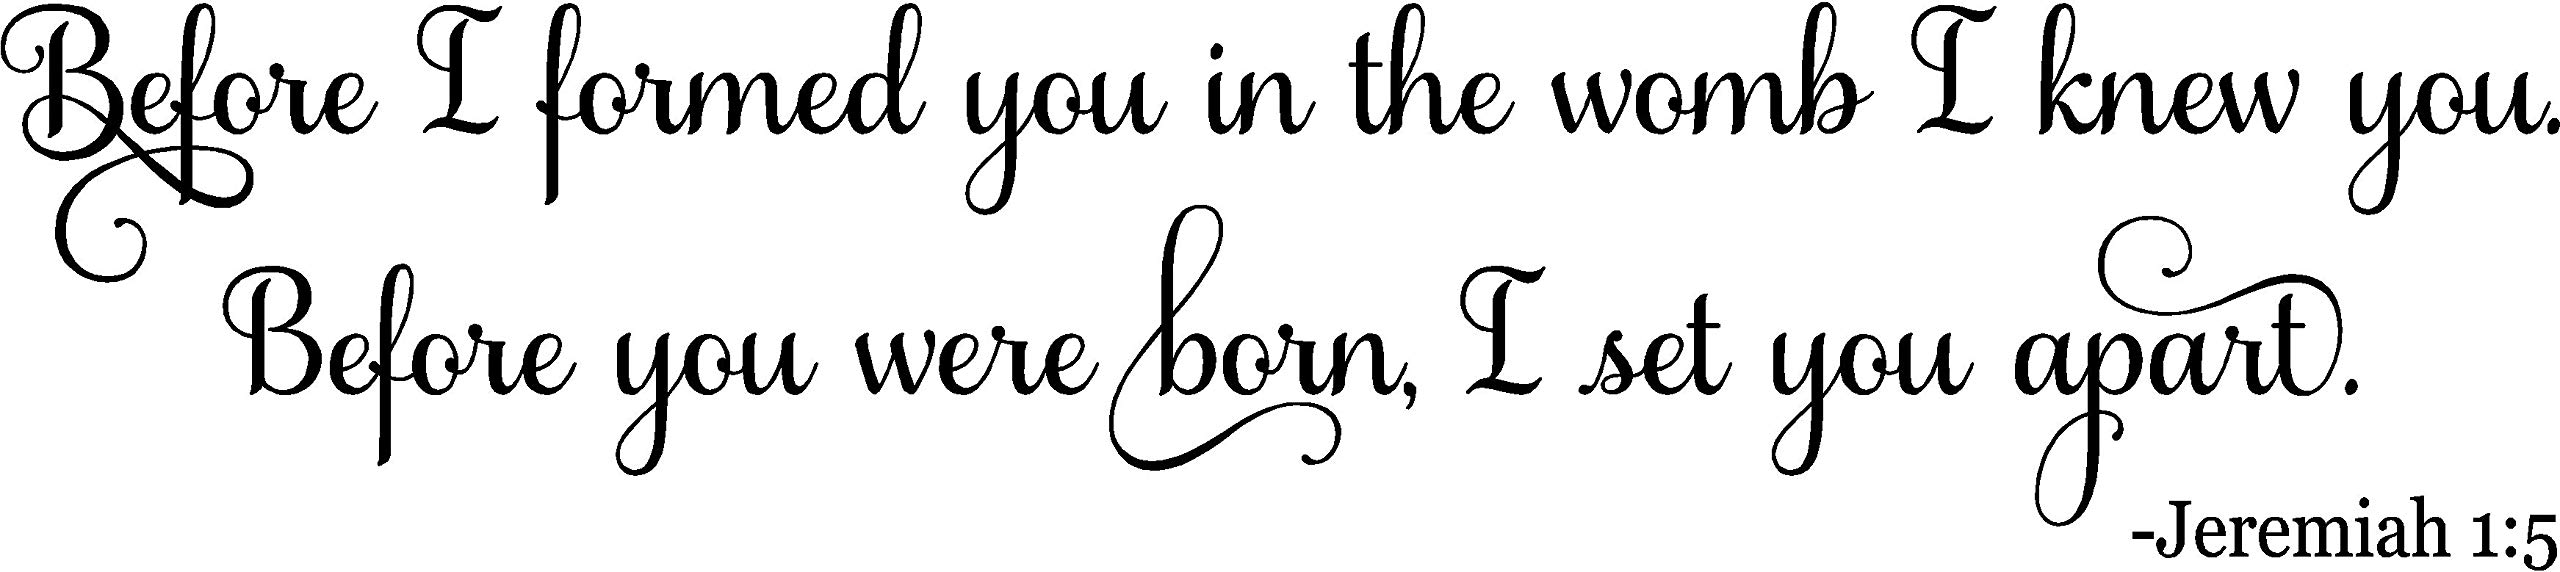 48''x11'' Before I formed you in the womb I knew you. Before you were born, I set you apart. Jeremiah 1:5 Bible Verse Scripture Christian Wall Decal Sticker Art Mural Home Décor Quote Baby Nursery